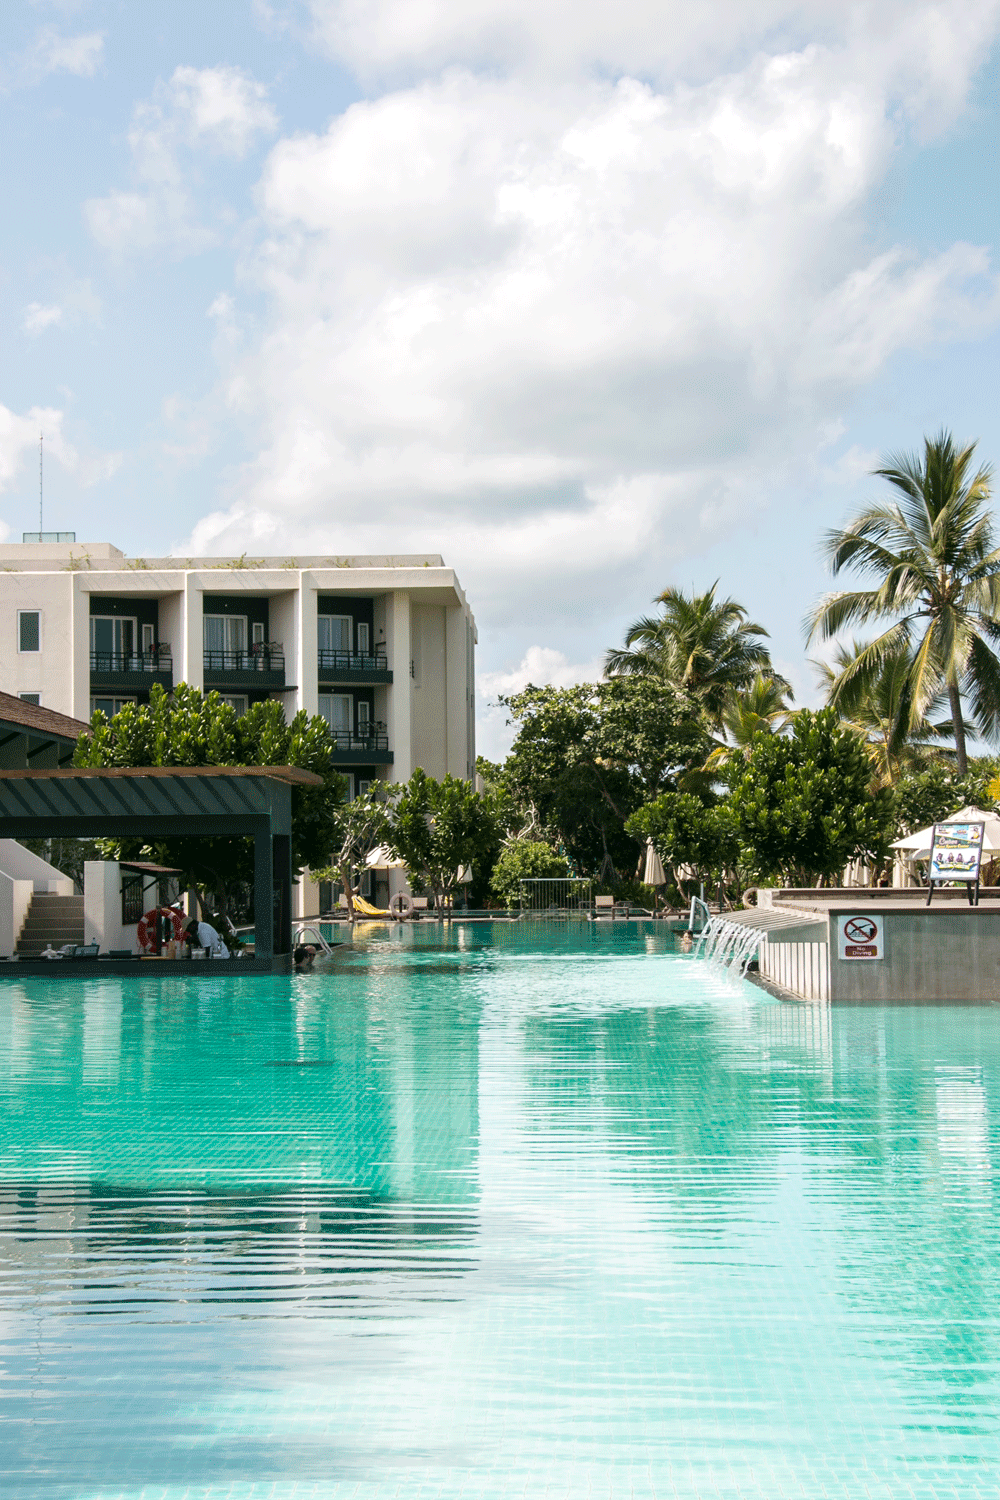 5 REASONS WHY YOU NEED TO STAY WITH CENTARA CEYSANDS IN SRI